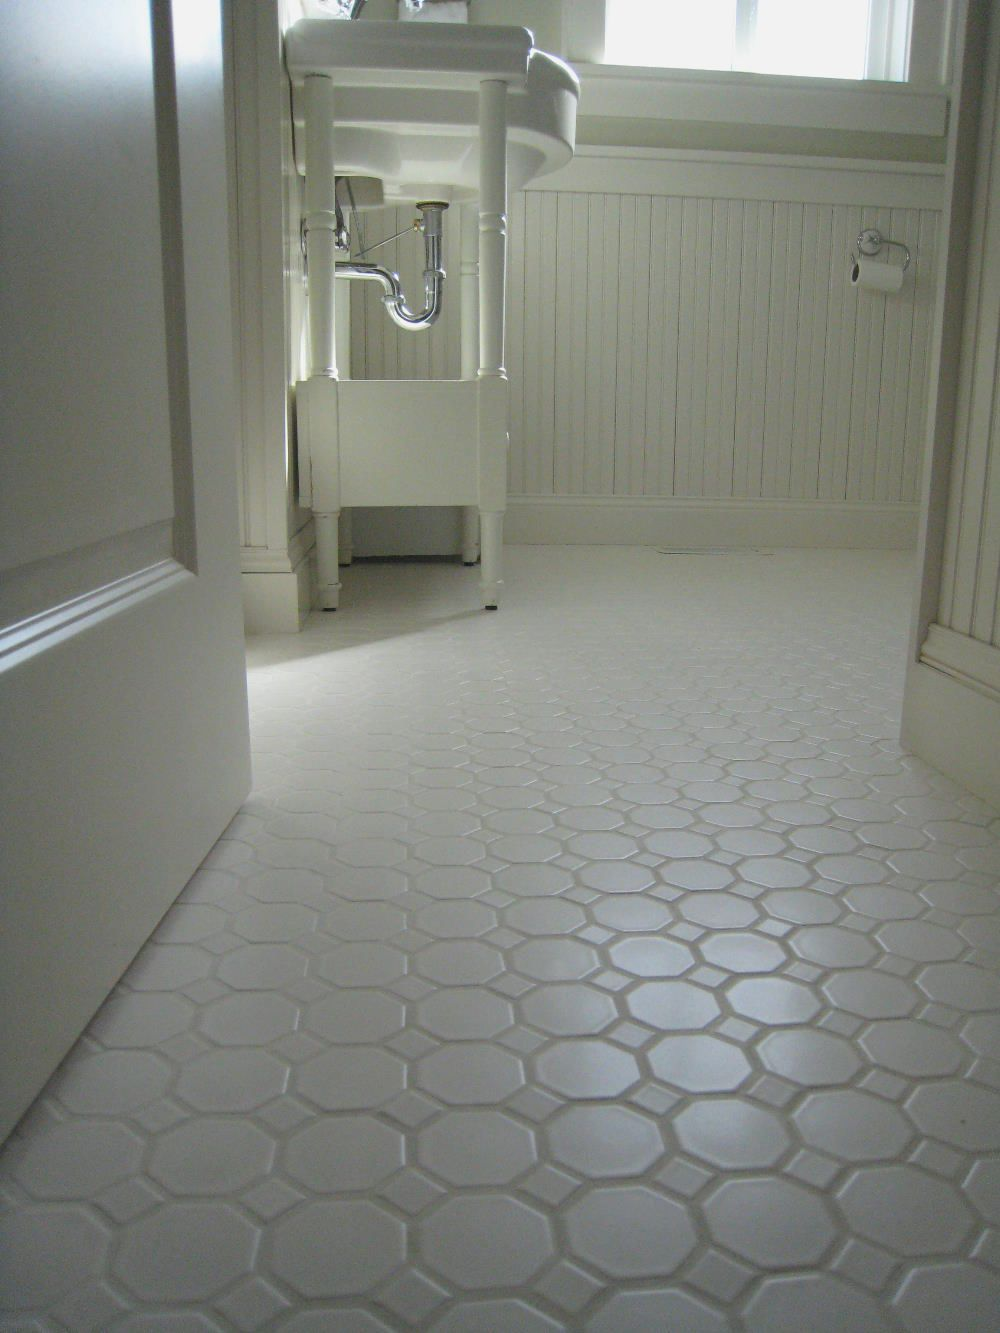 slip resistant flooring age in place universal design pinterest handicap bathroom bath and house